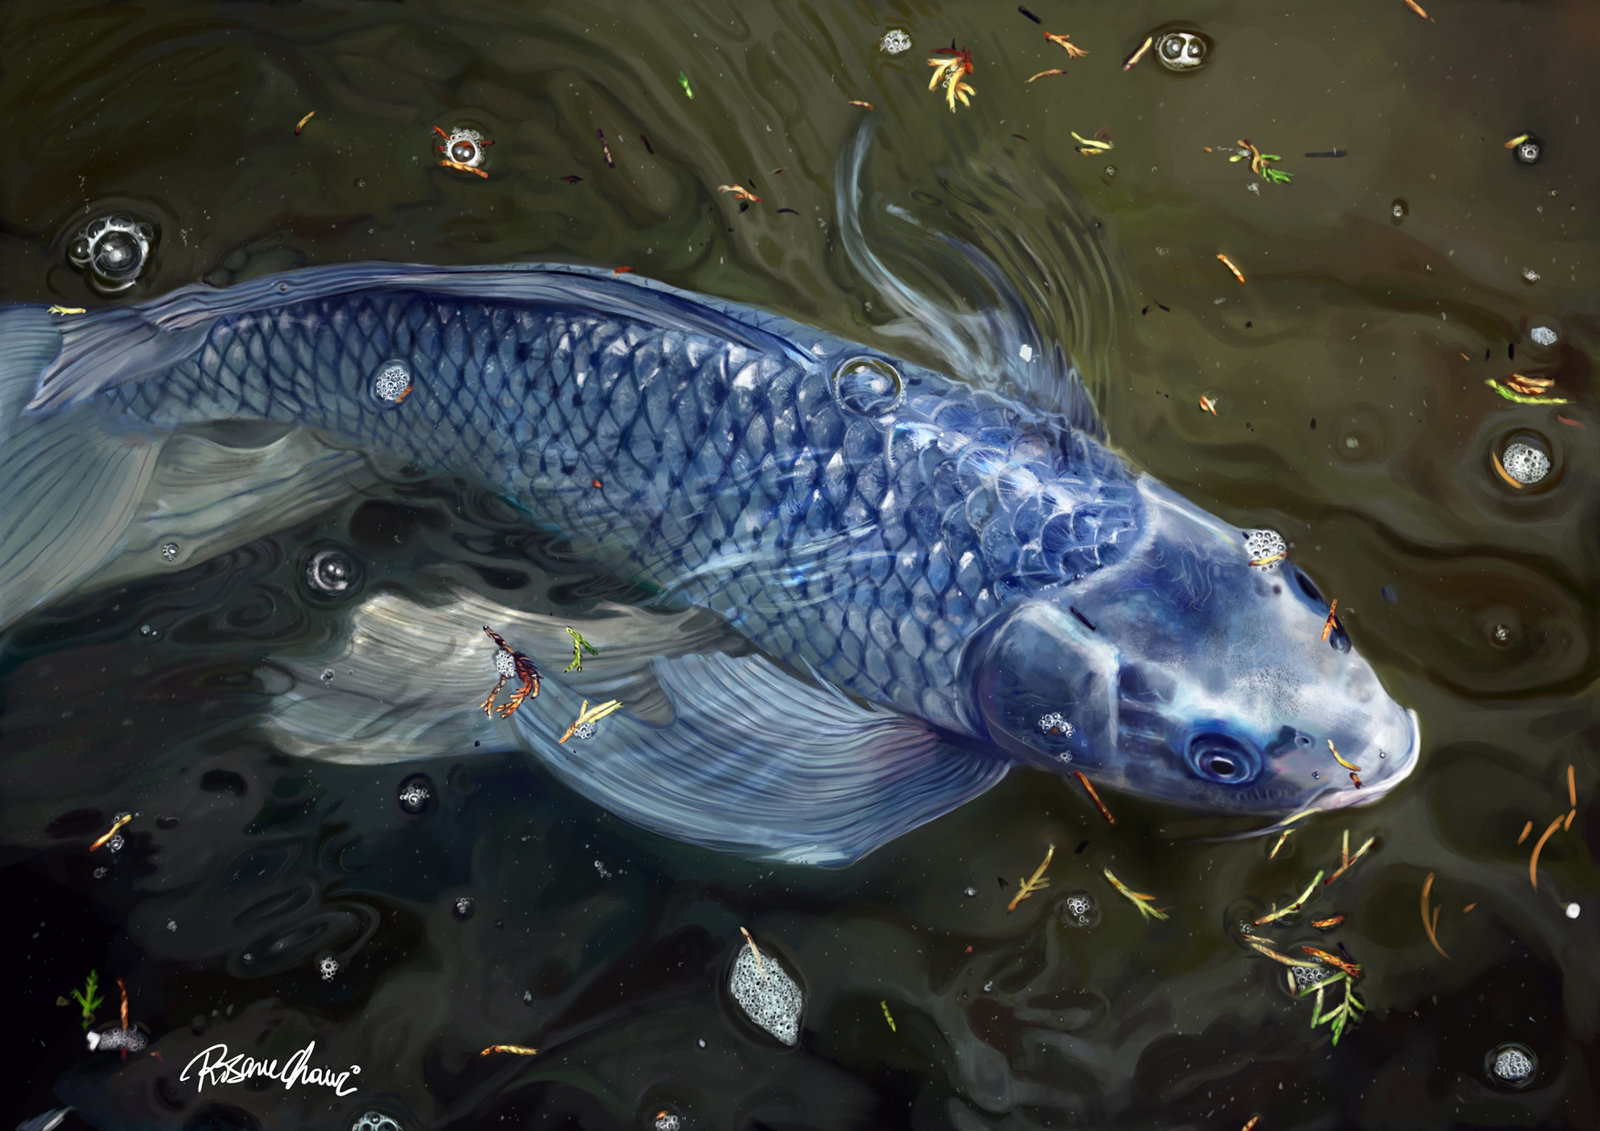 Collection nature 39 s show fish by techgnotic on deviantart for Coy fish painting